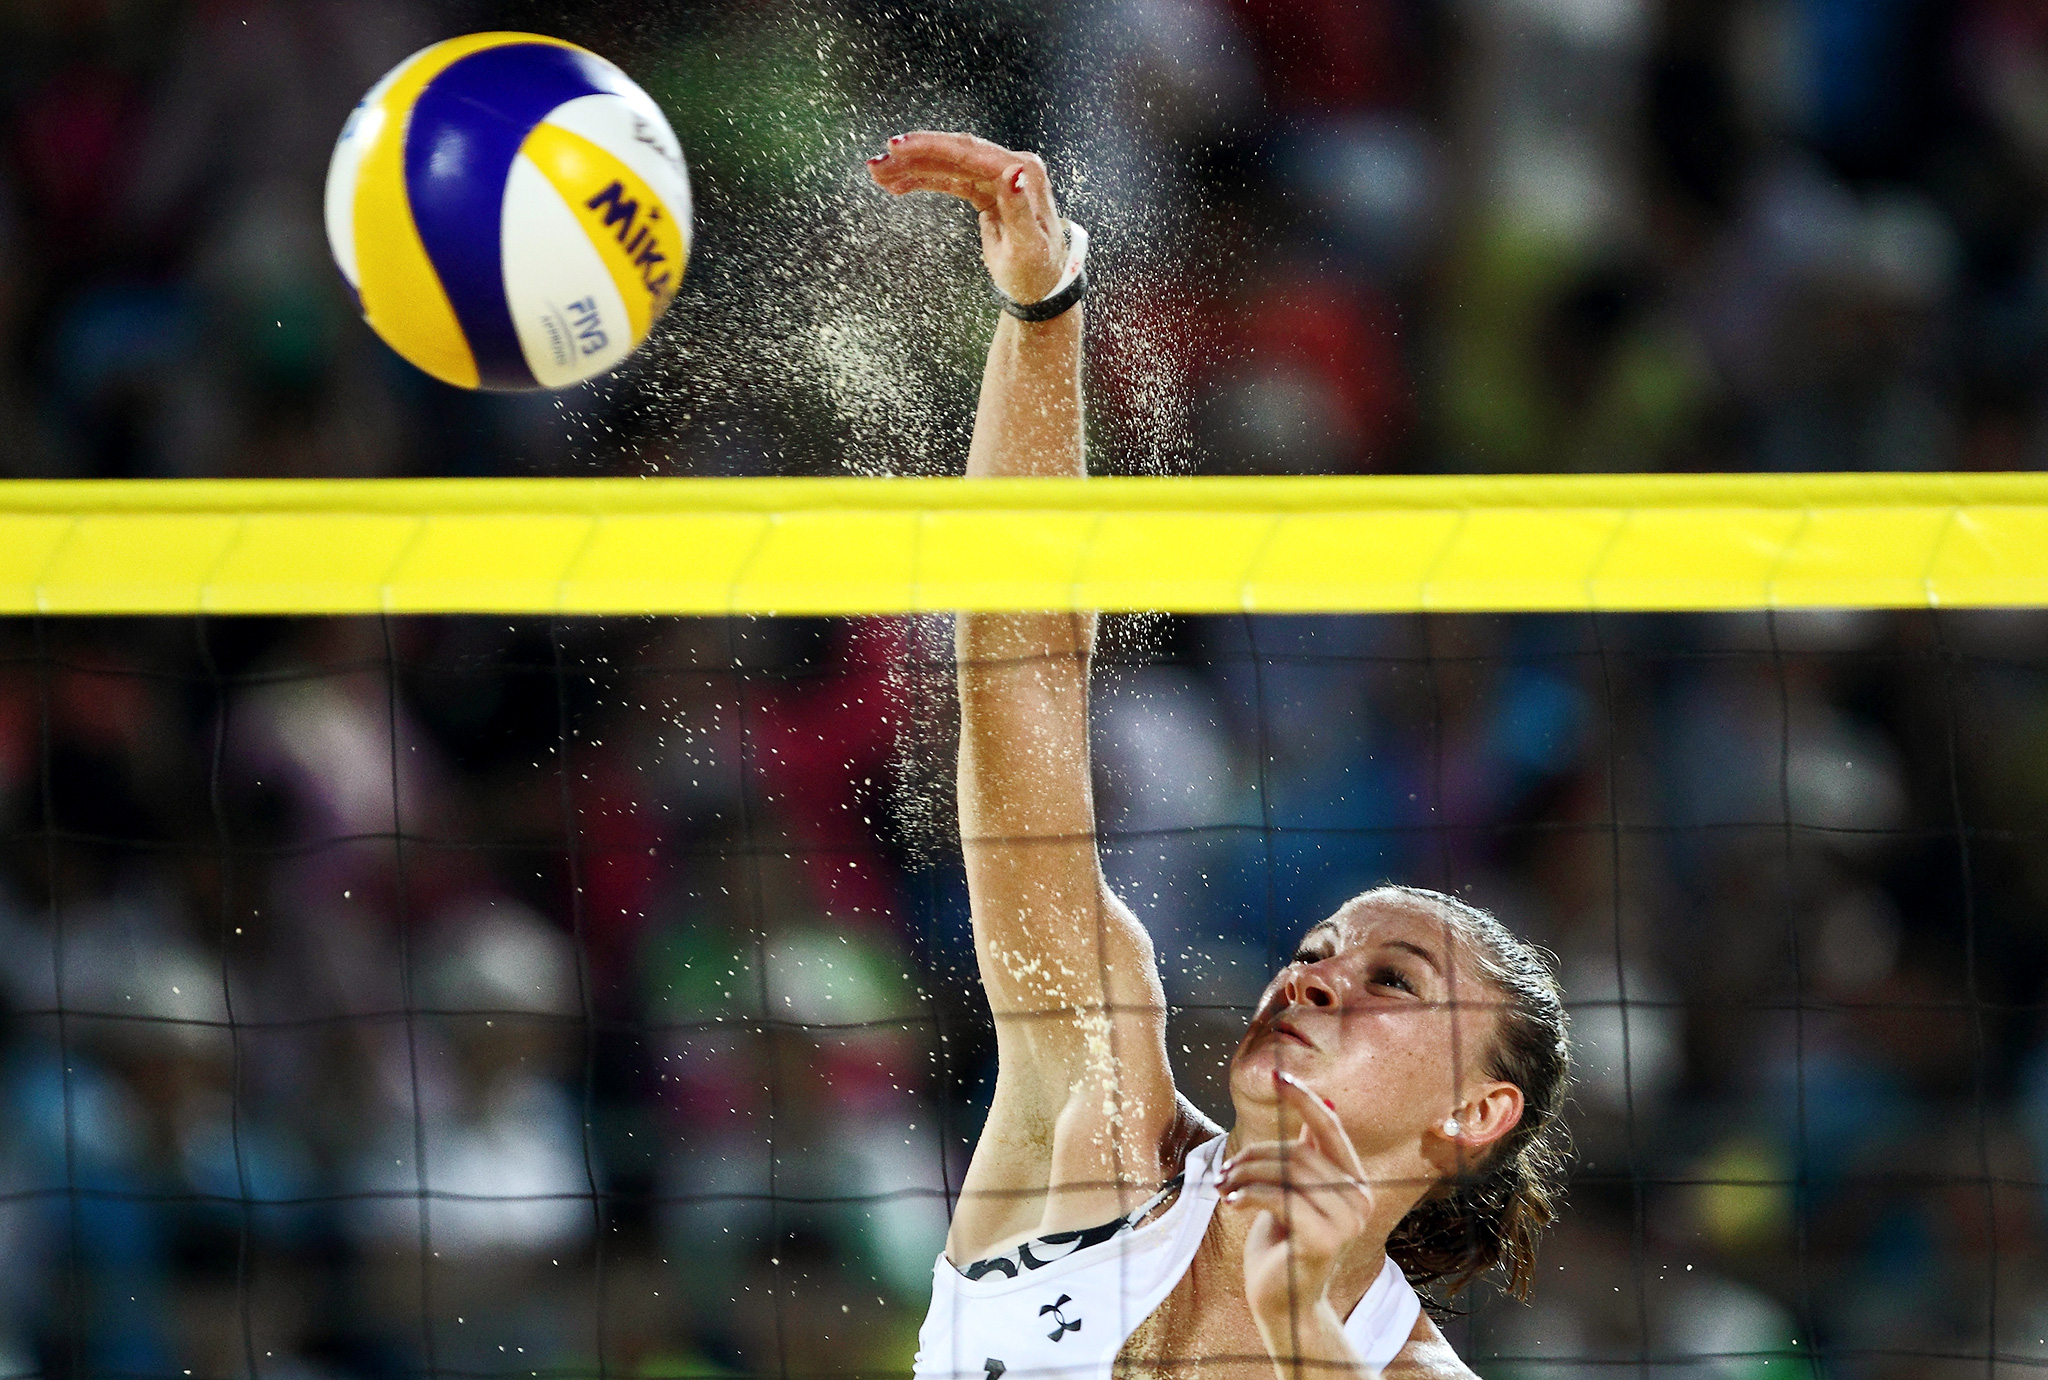 Dunja Gerson of Switzerland spikes the ball against the United States during the beach volleyball competition at the Nanjing Youth Olympic Games in China.